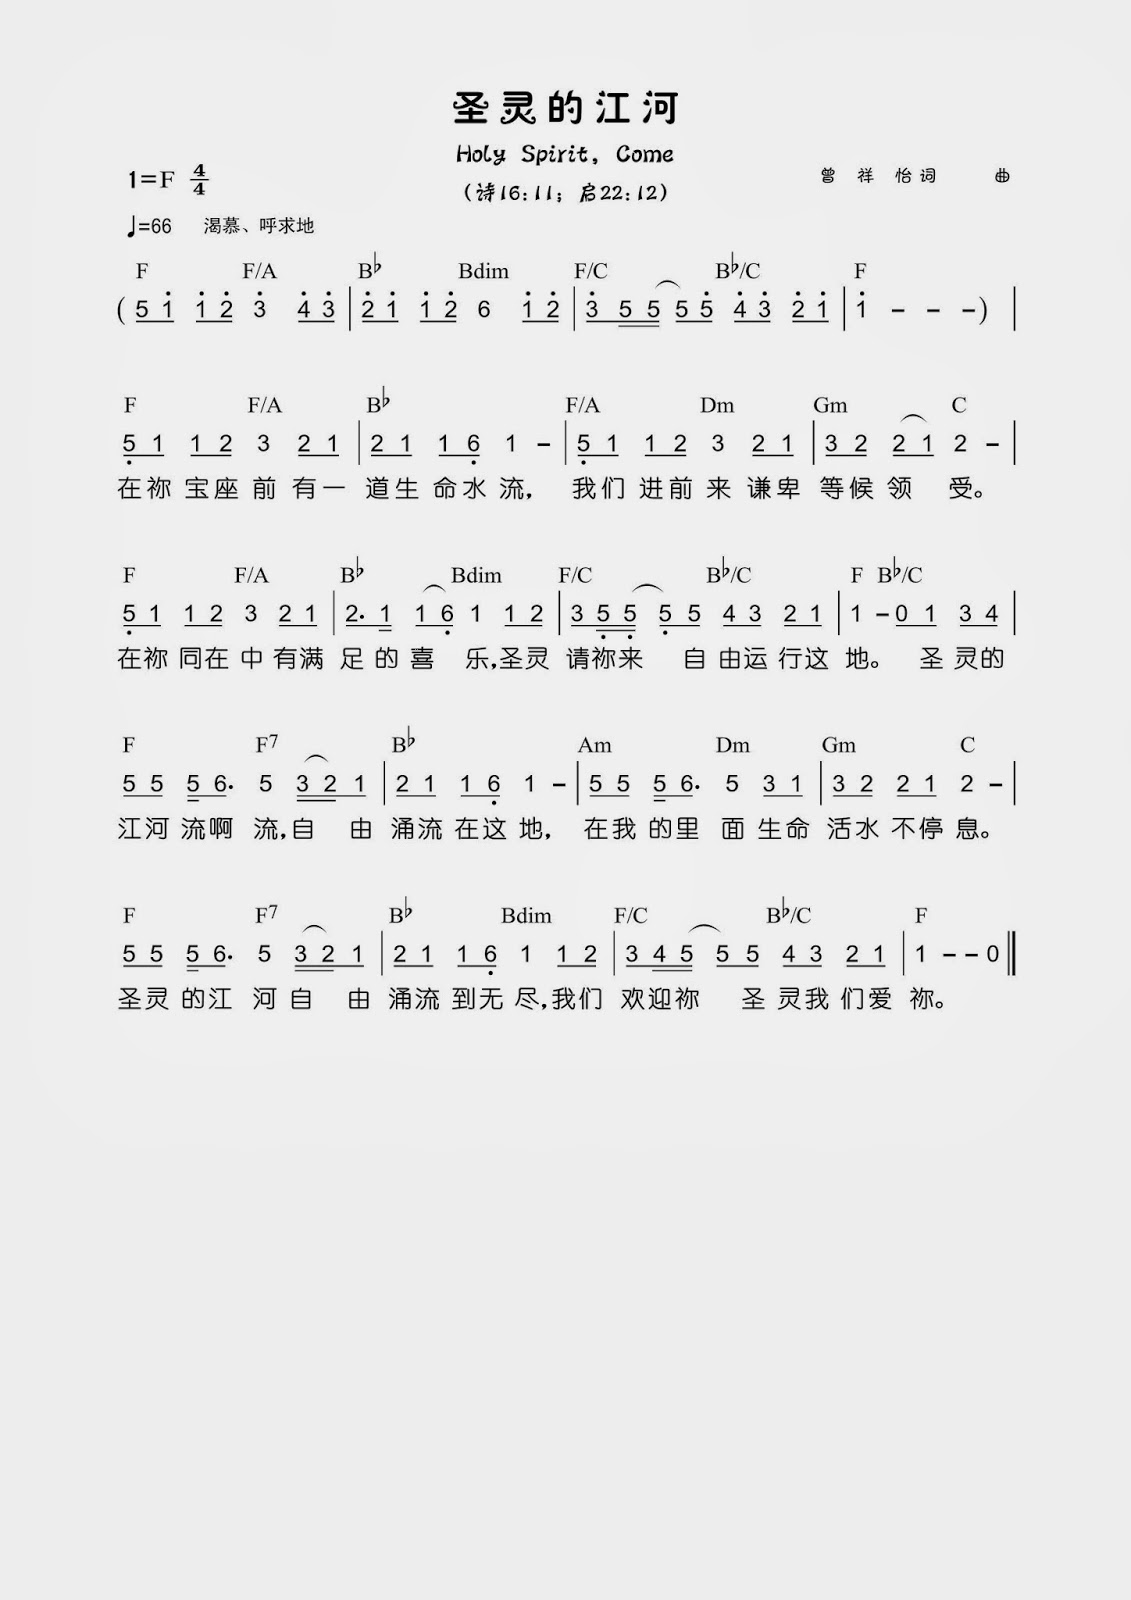 Worshipnet february 2014 chords hexwebz Image collections